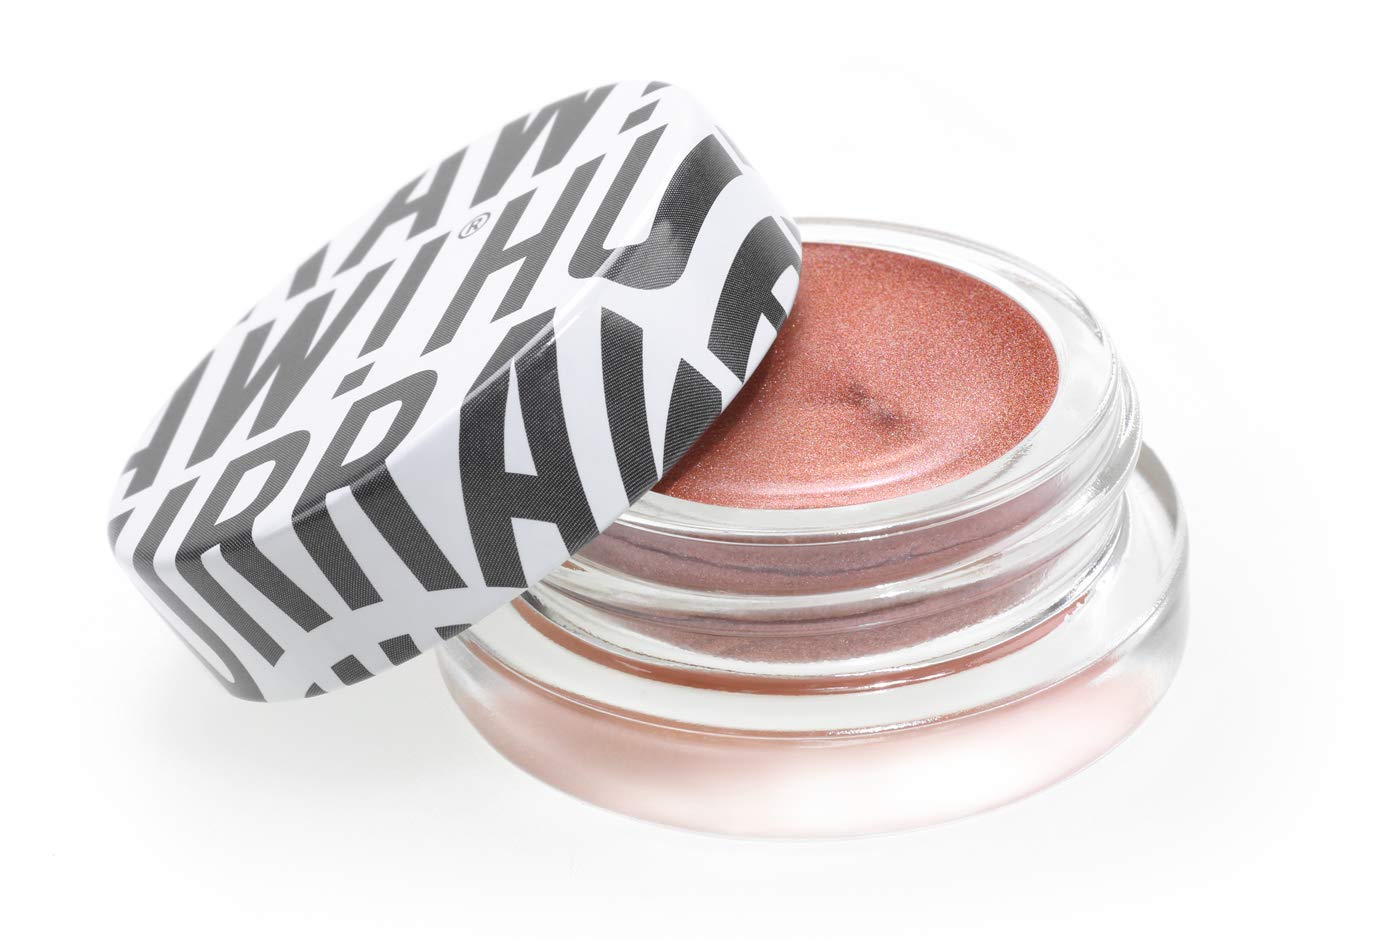 Hurraw Copper Aura Balm: Coconut-based Highlighter, Shimmer, Illuminator & Luminizer. Healthy Beauty with Synthetic Mica. Certified Vegan & Cruelty Free. Organic, Non-GMO & Natural. Made in USA